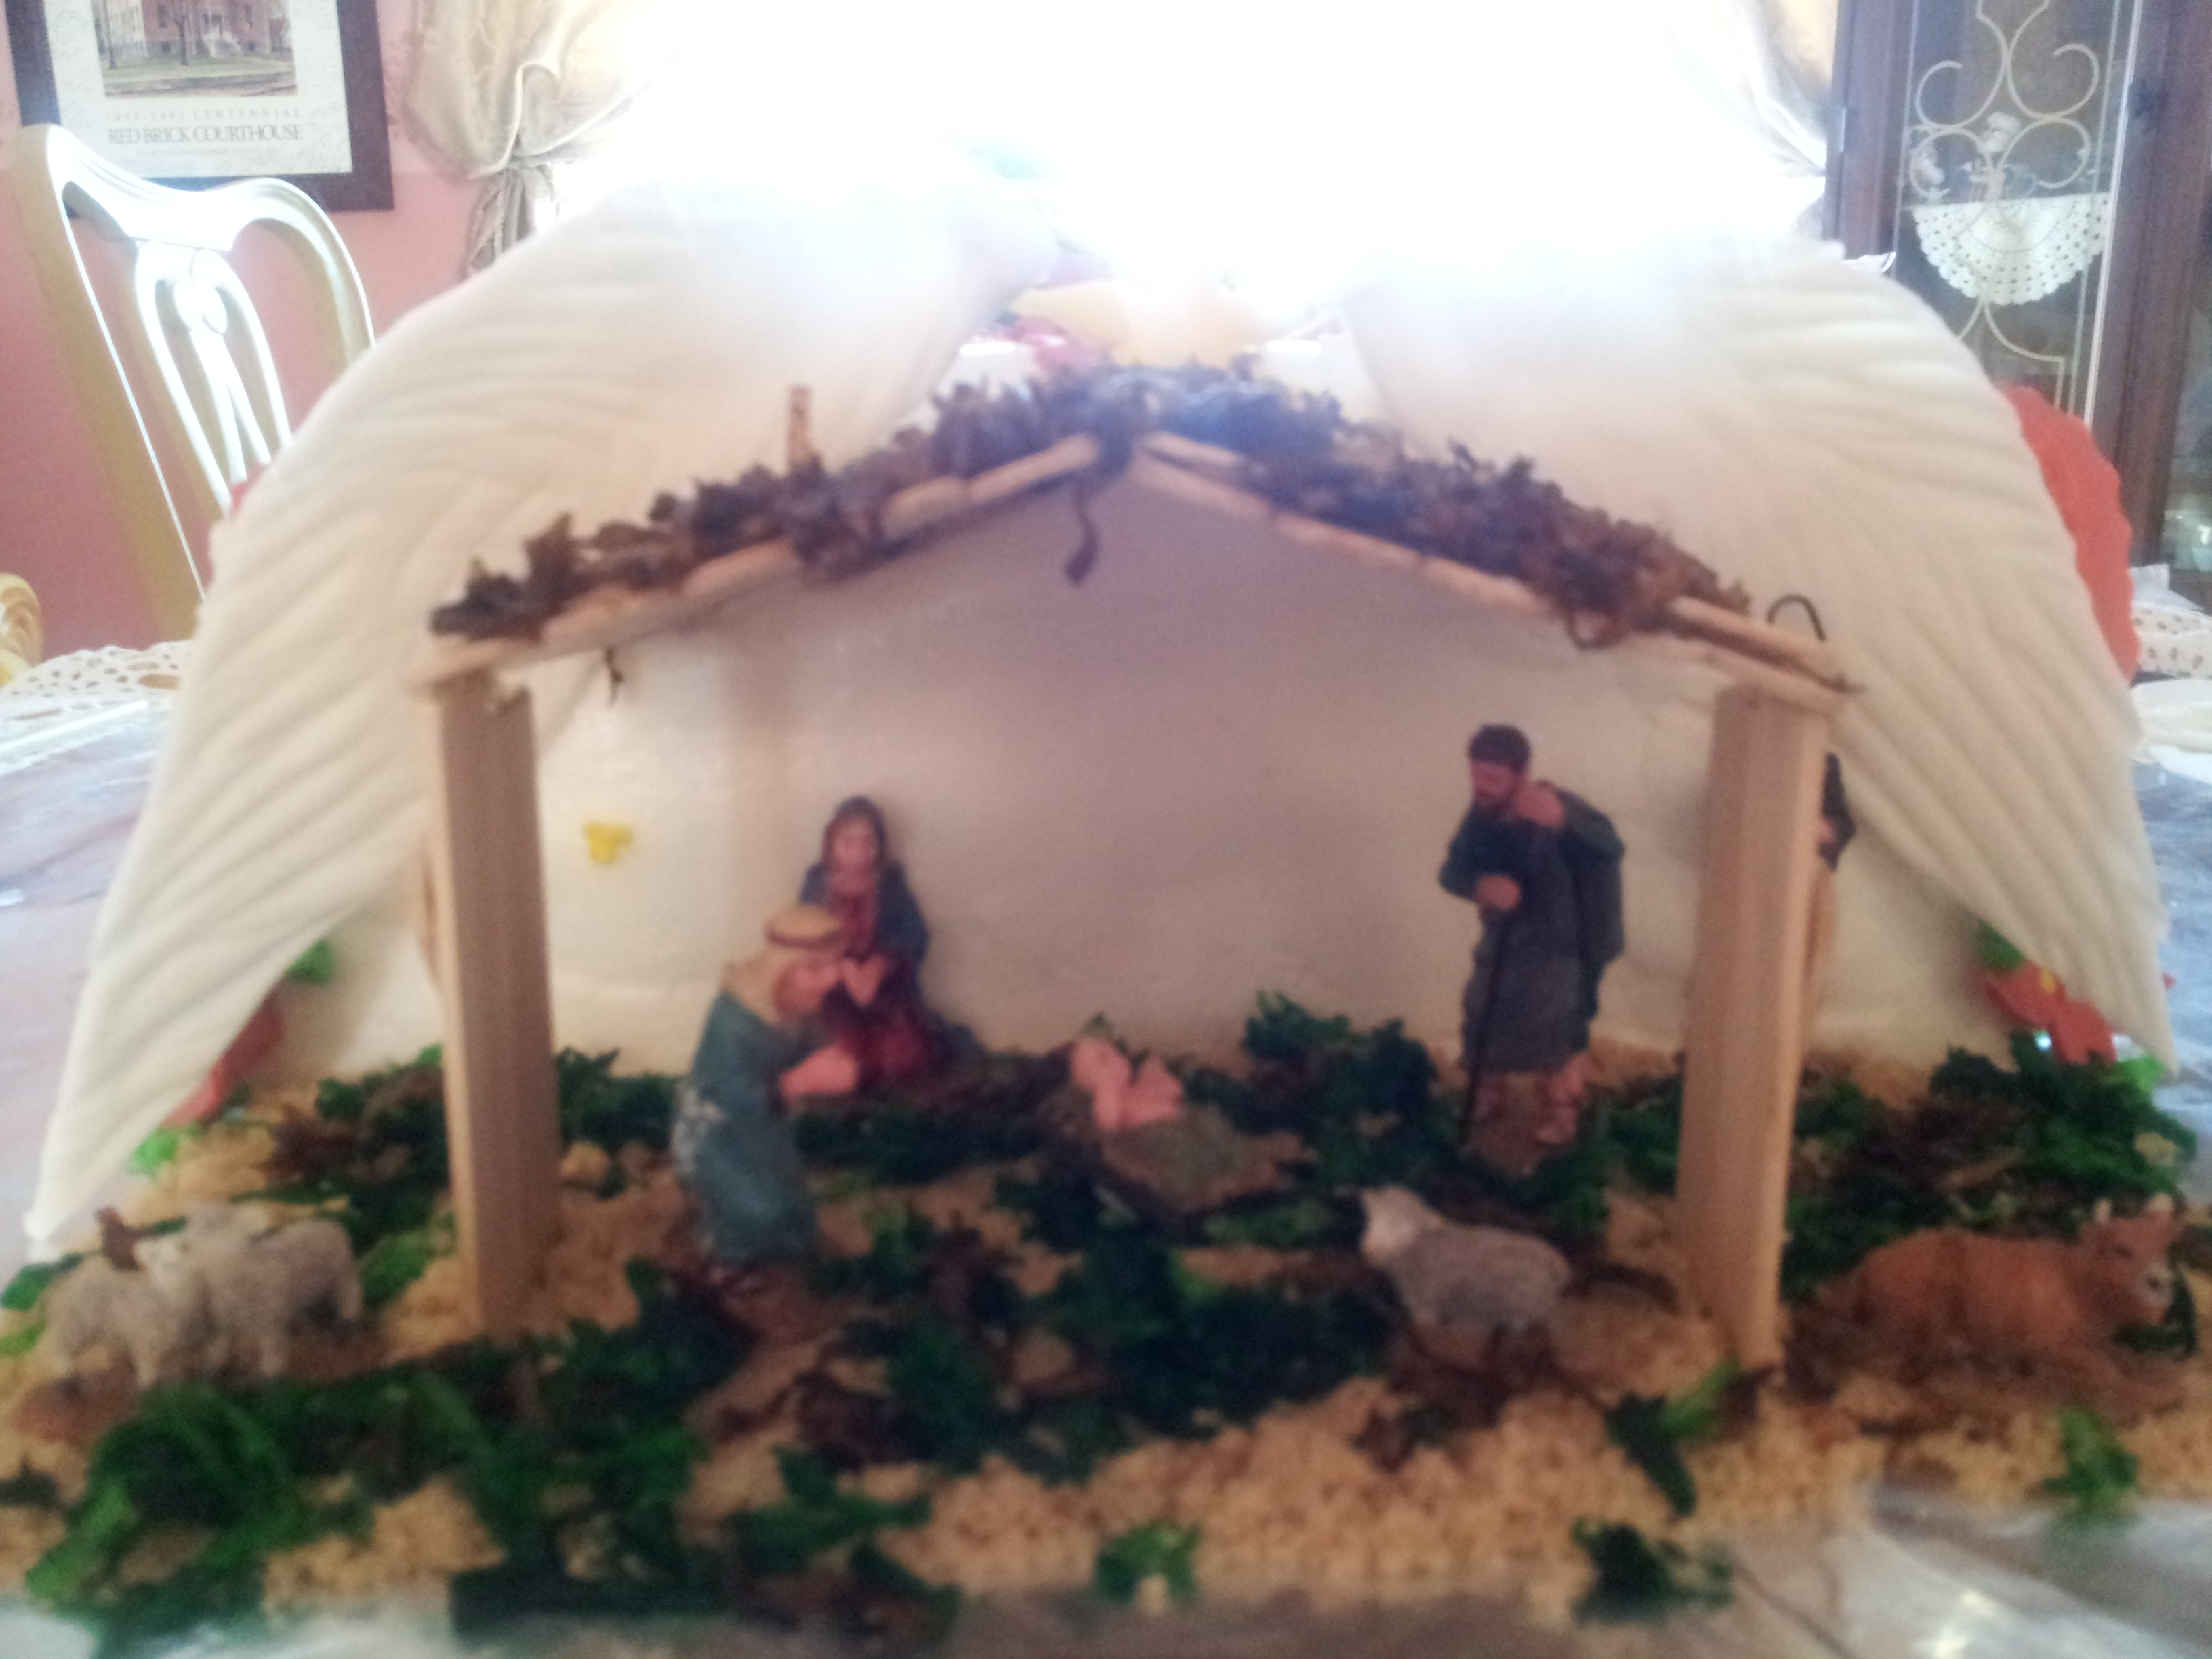 It is a nativity coming out of a gift box